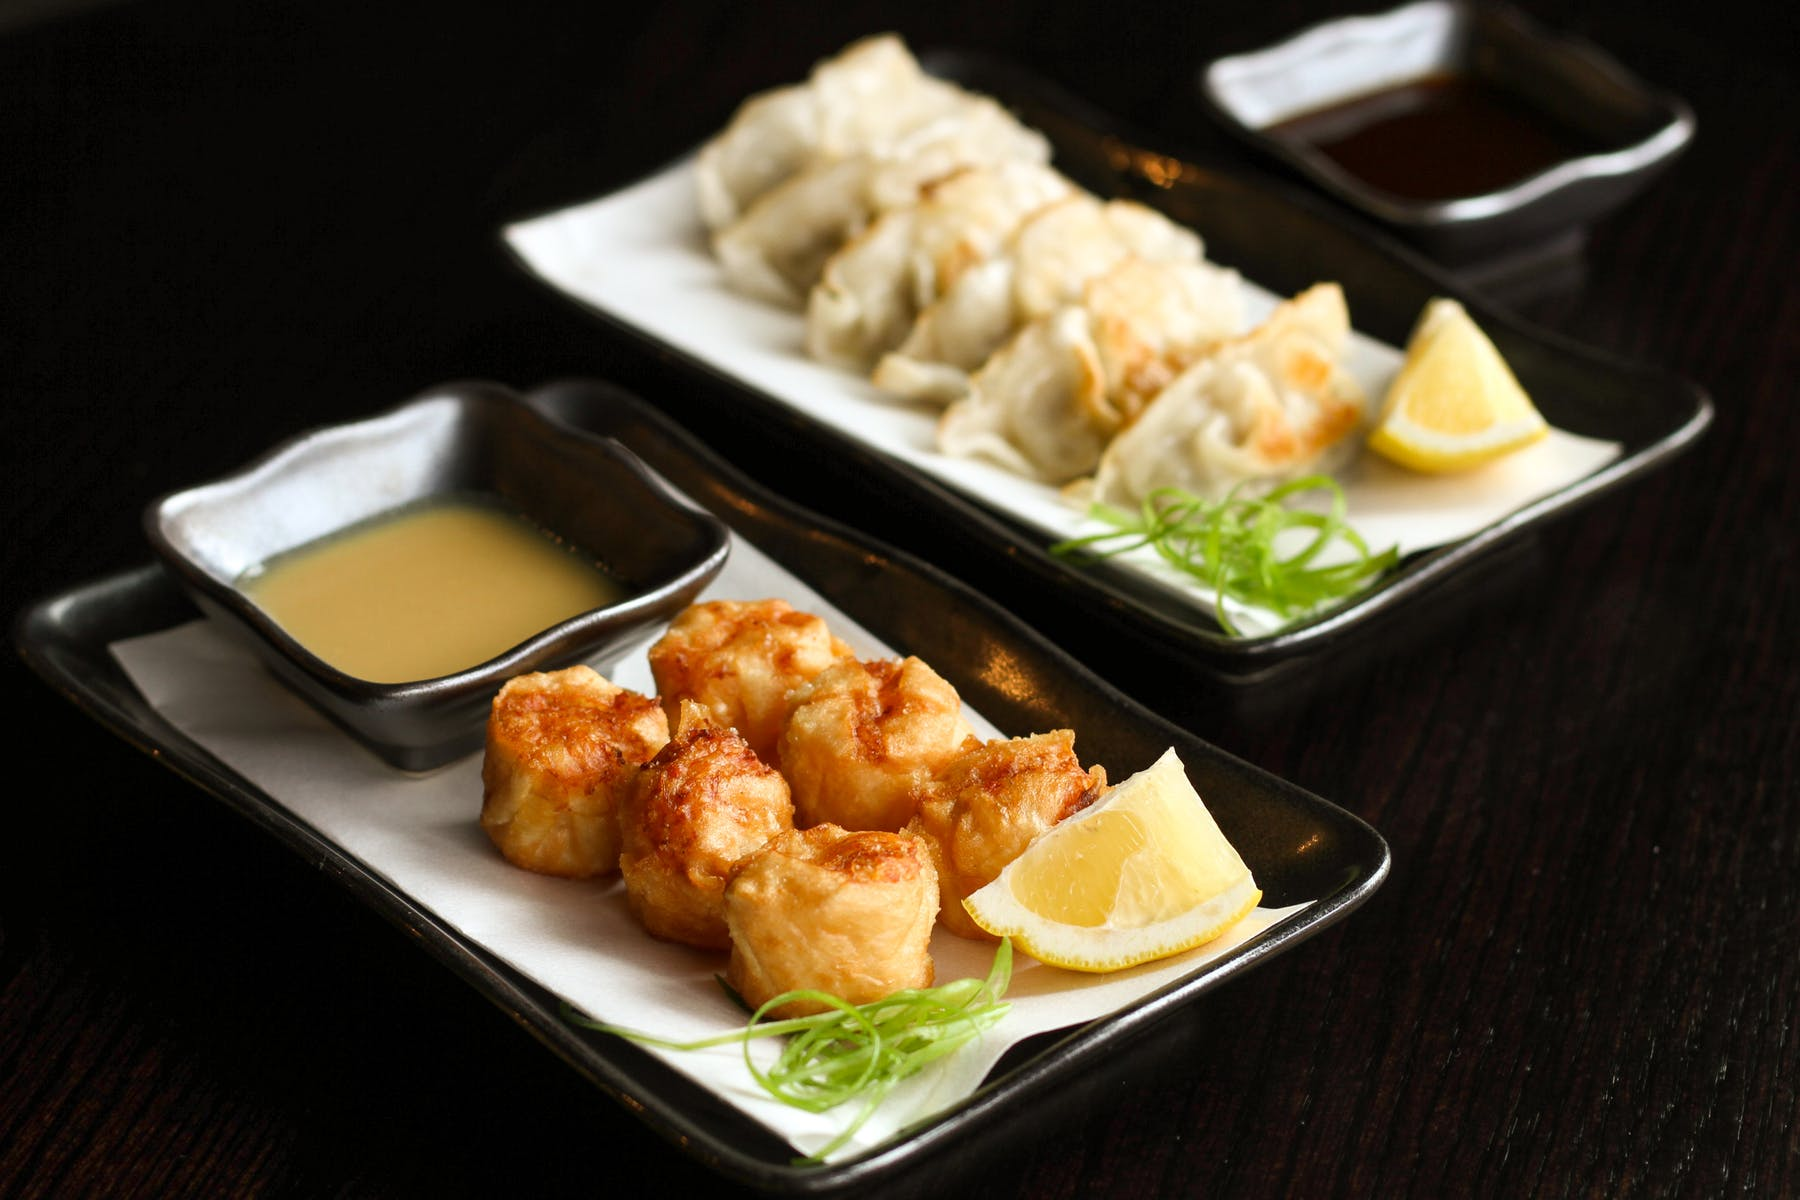 Fried Shumai and Gyoza Dumplings